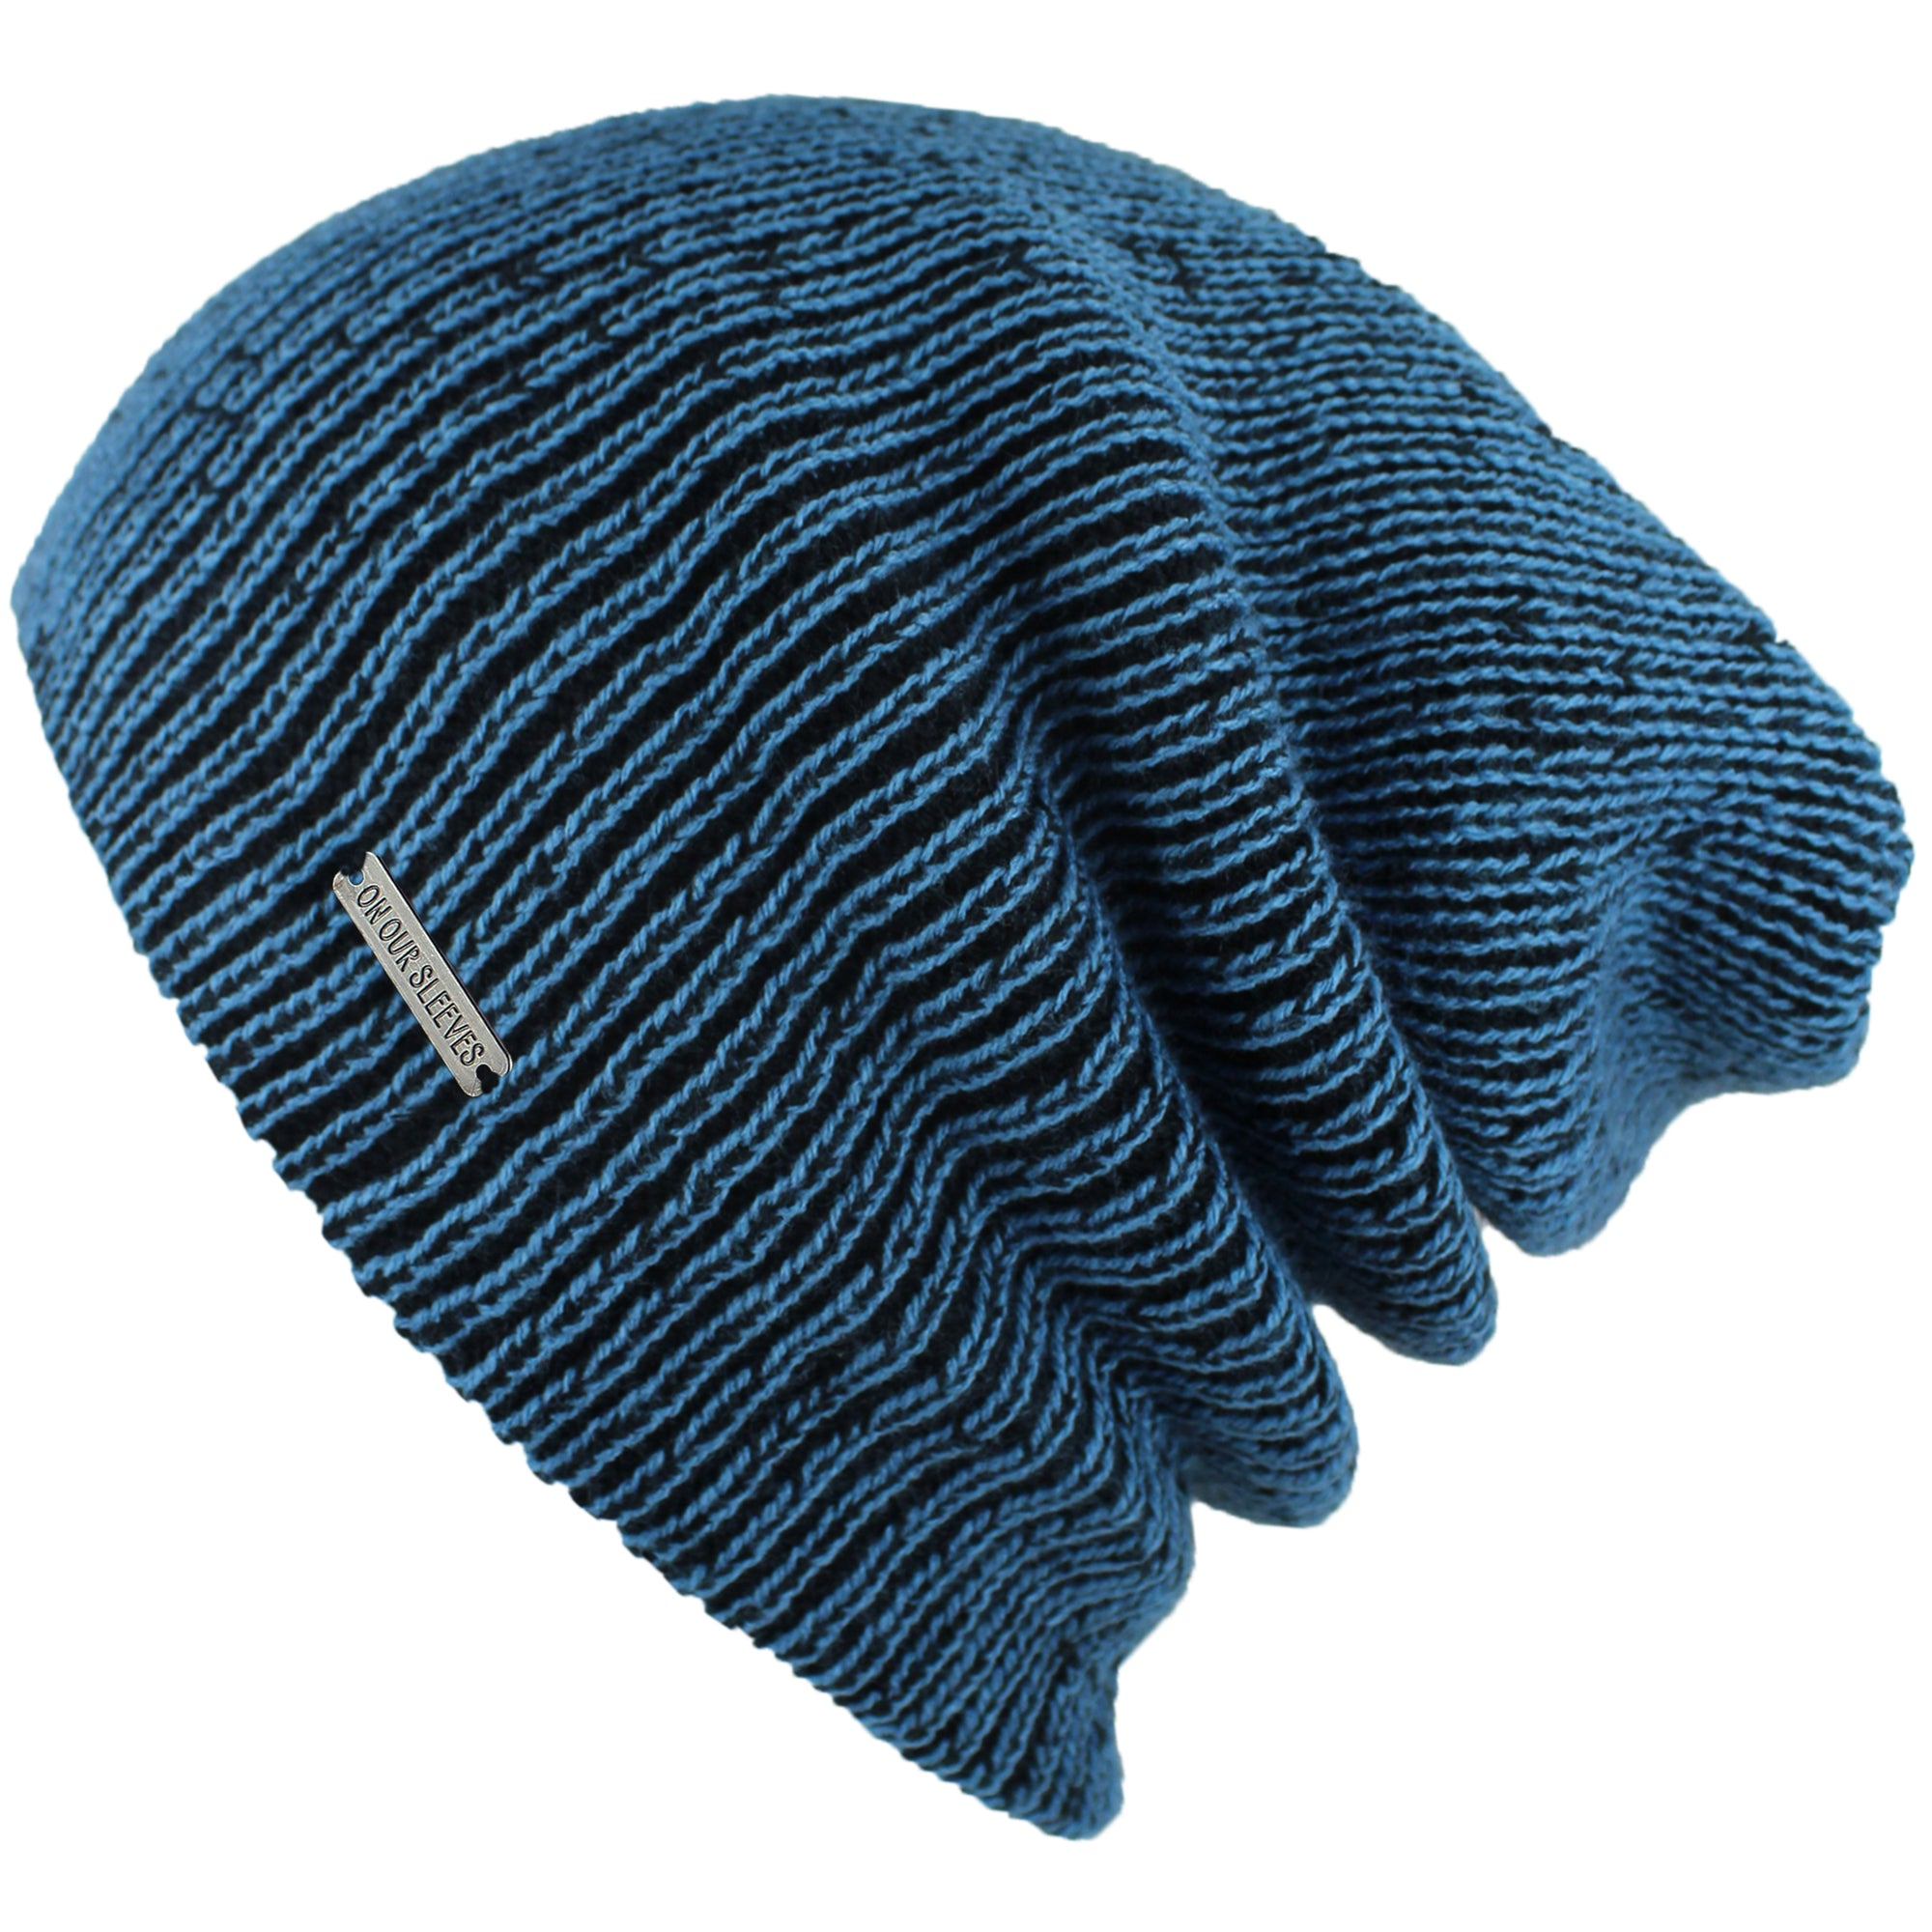 slouchy beanies for men black blue